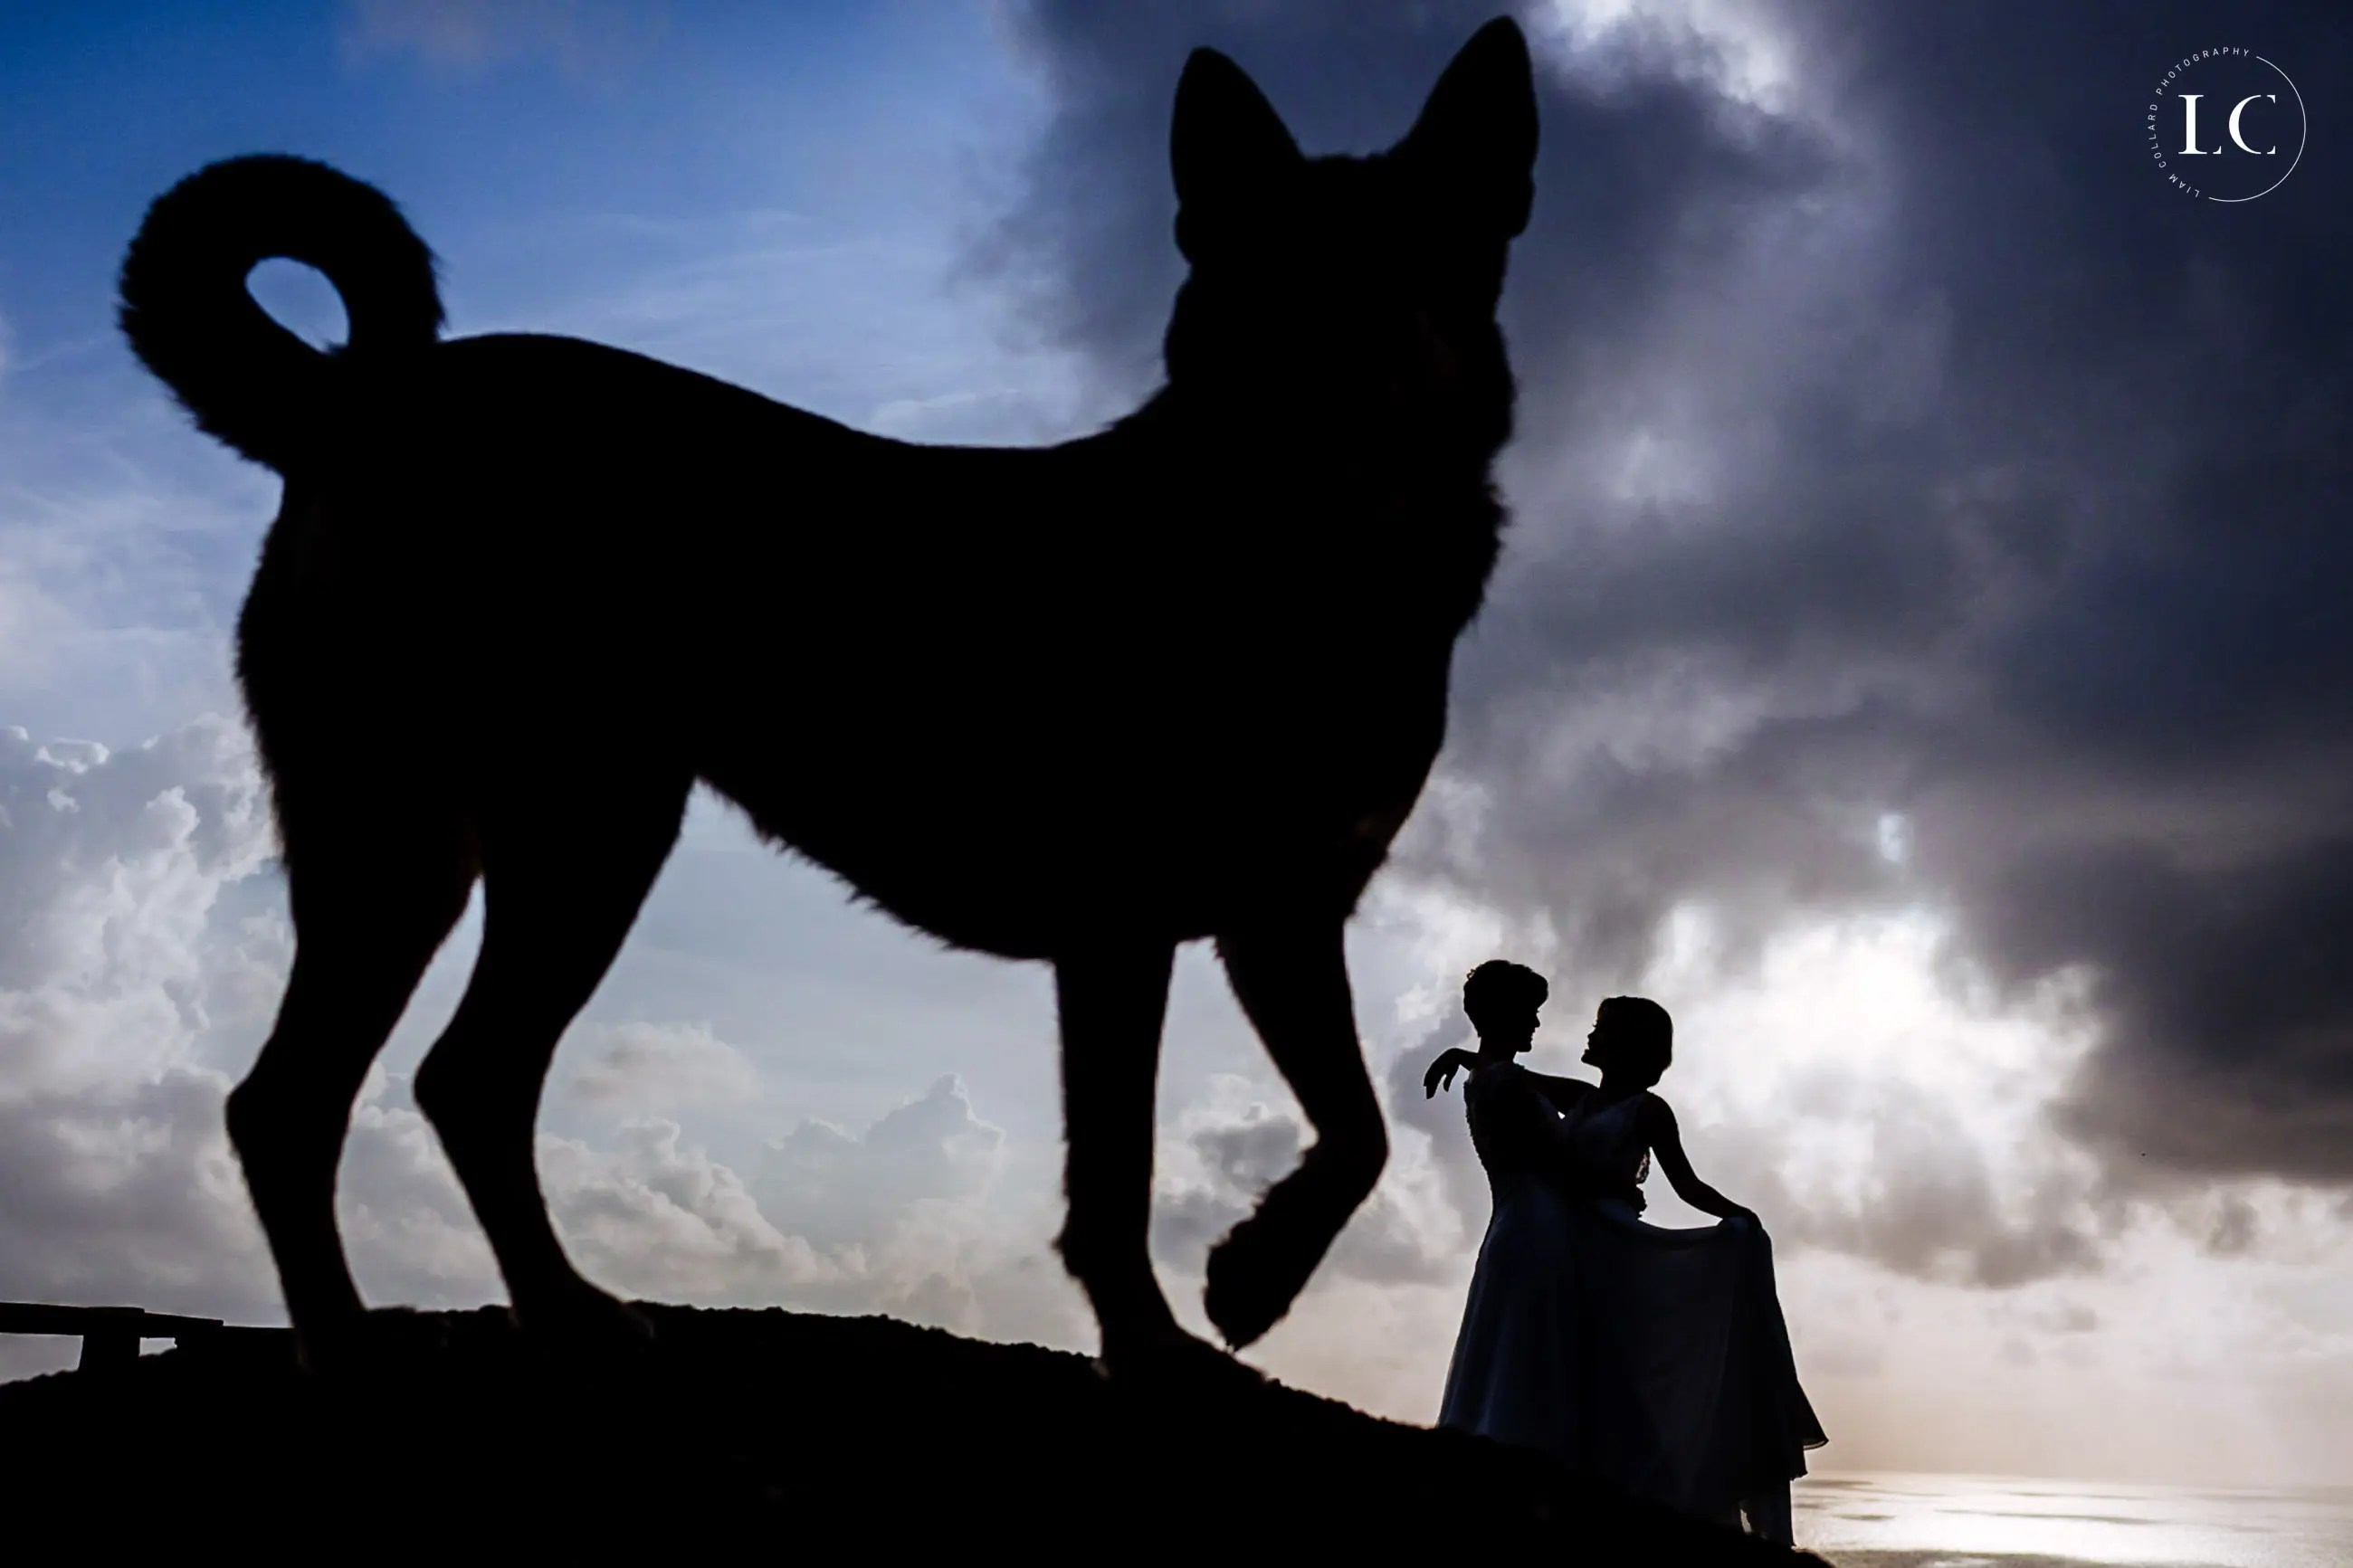 Silhouette of couple and dog at night